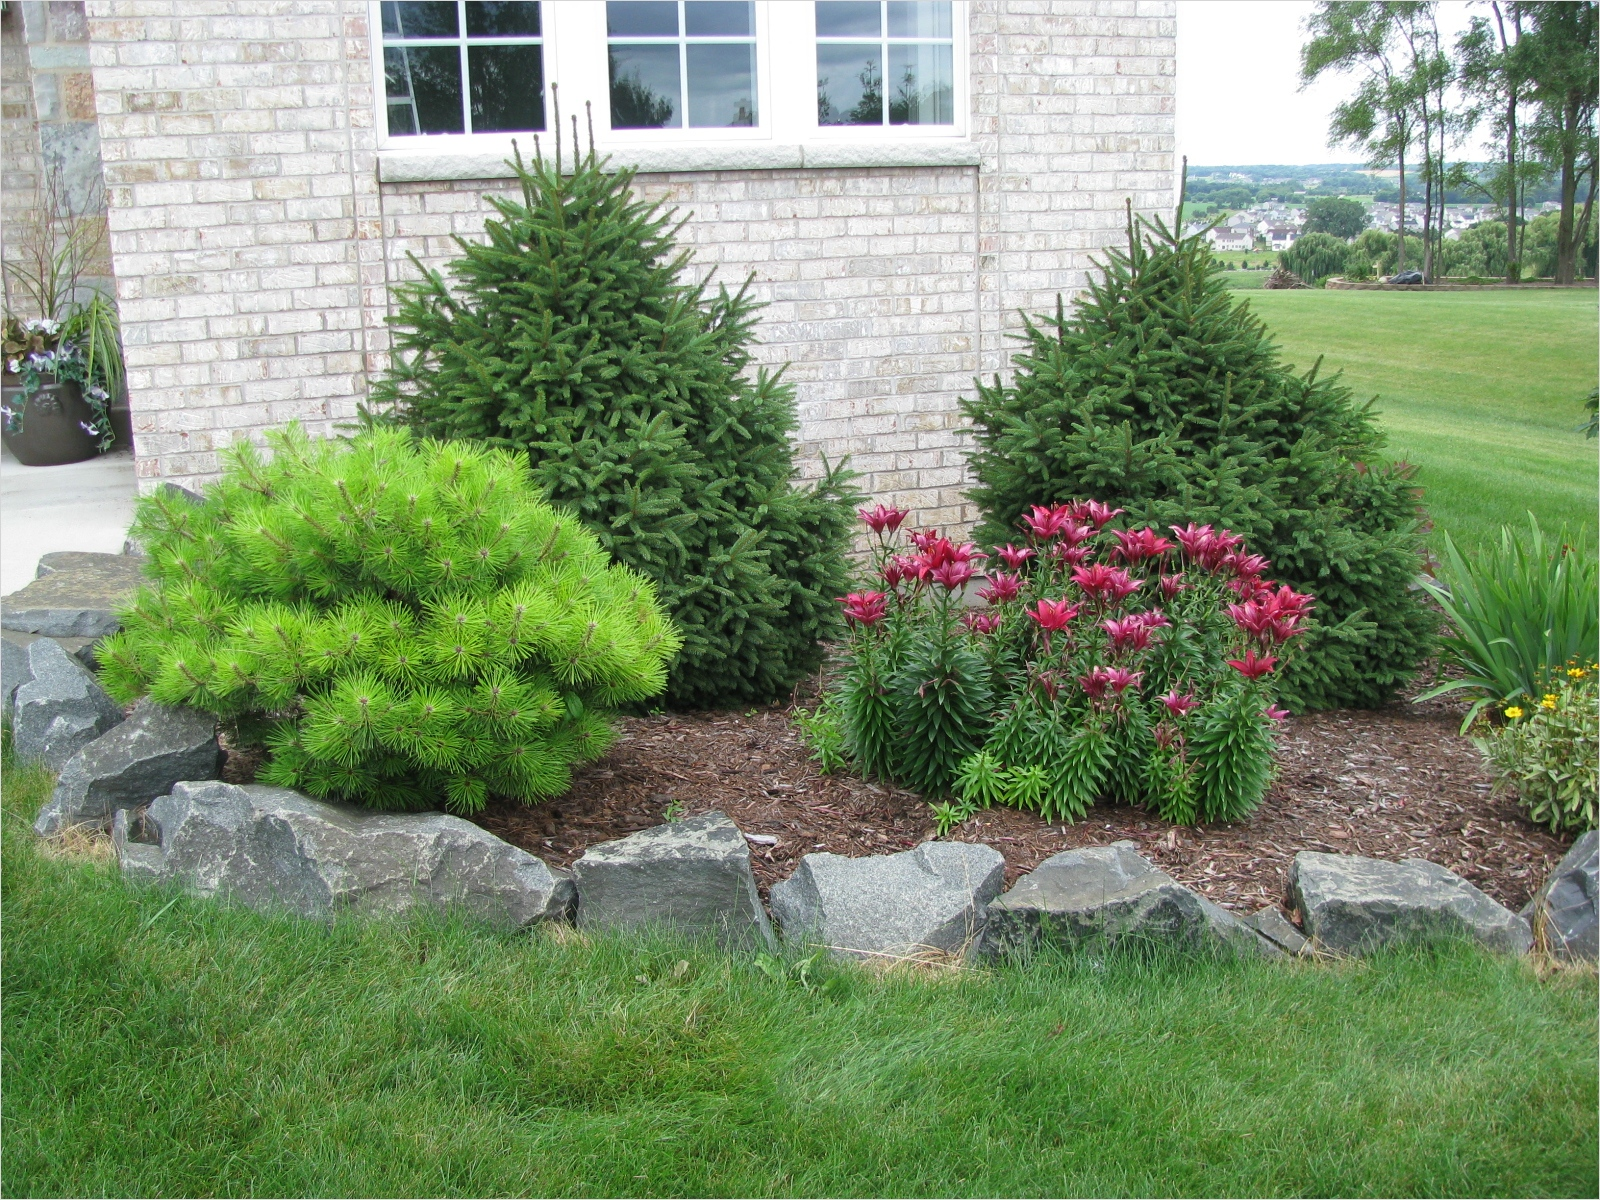 43 Perfect Gravel Landscaping Ideas 26 Gravel and Grass Landscaping Ideas 7